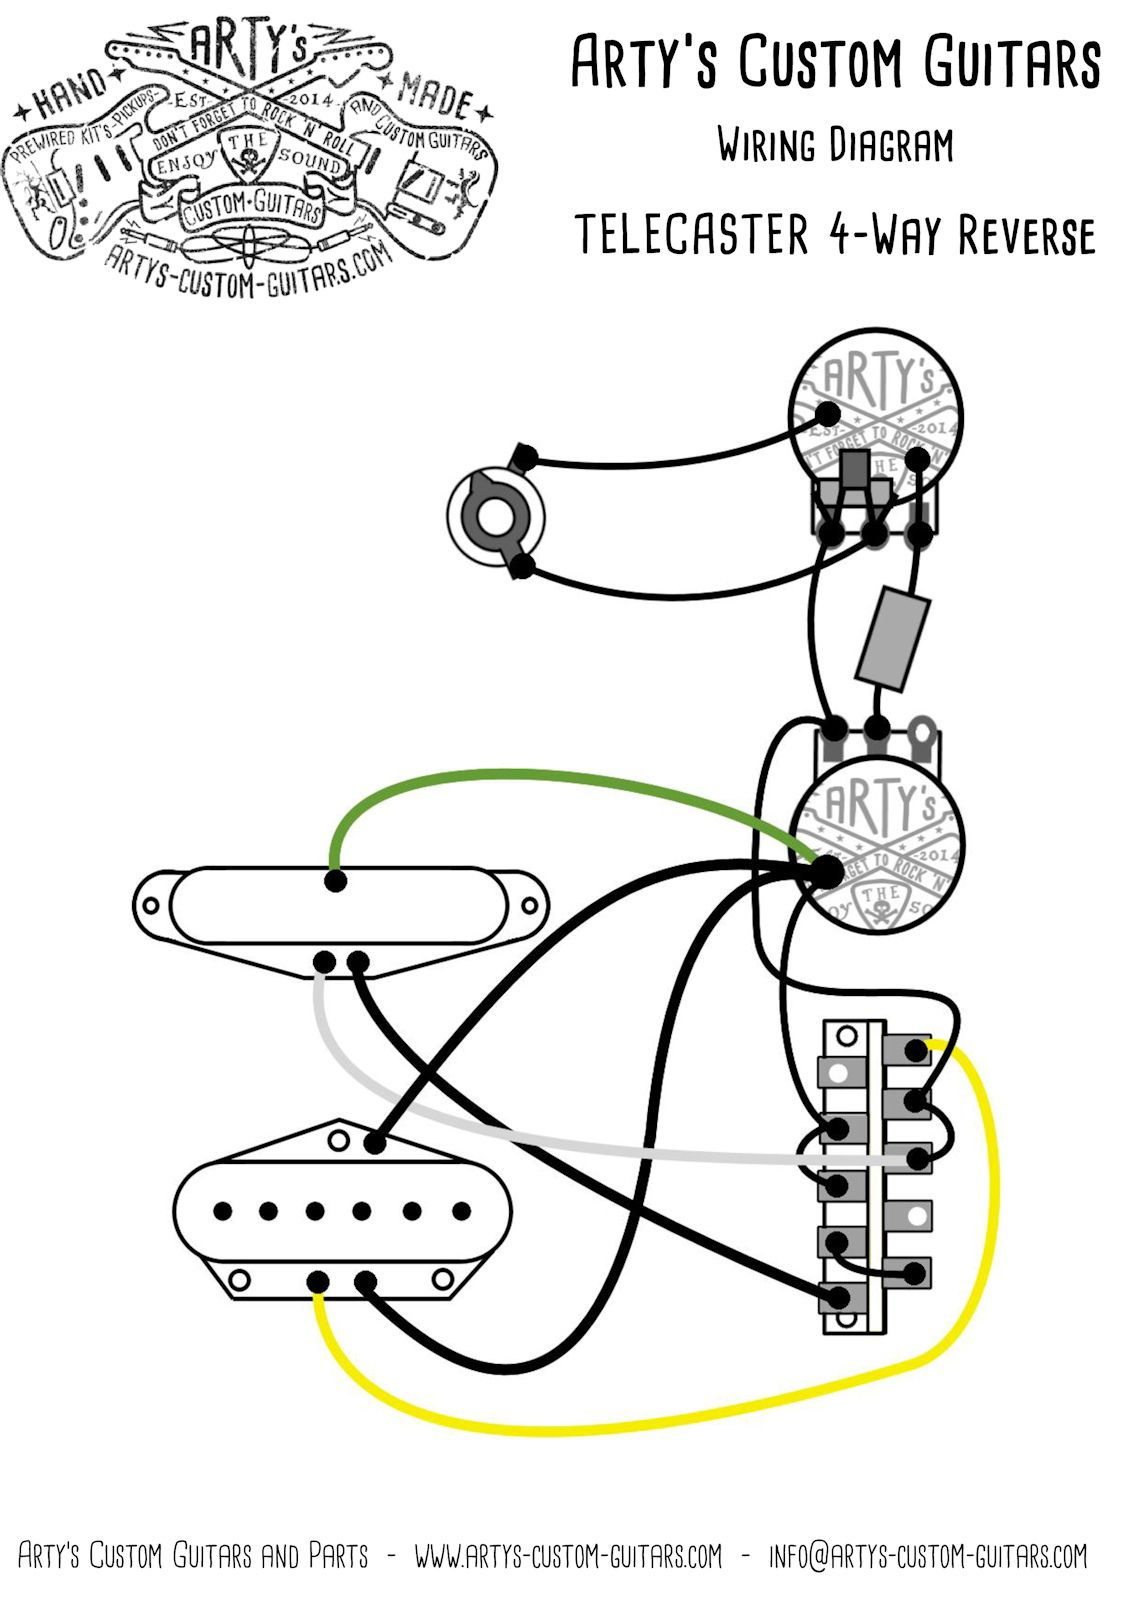 Te 4 Way Reverse Control Premium Prewired Kit Wiring Harness Vintage Artys Custom Guitars Pre Wired Assembly